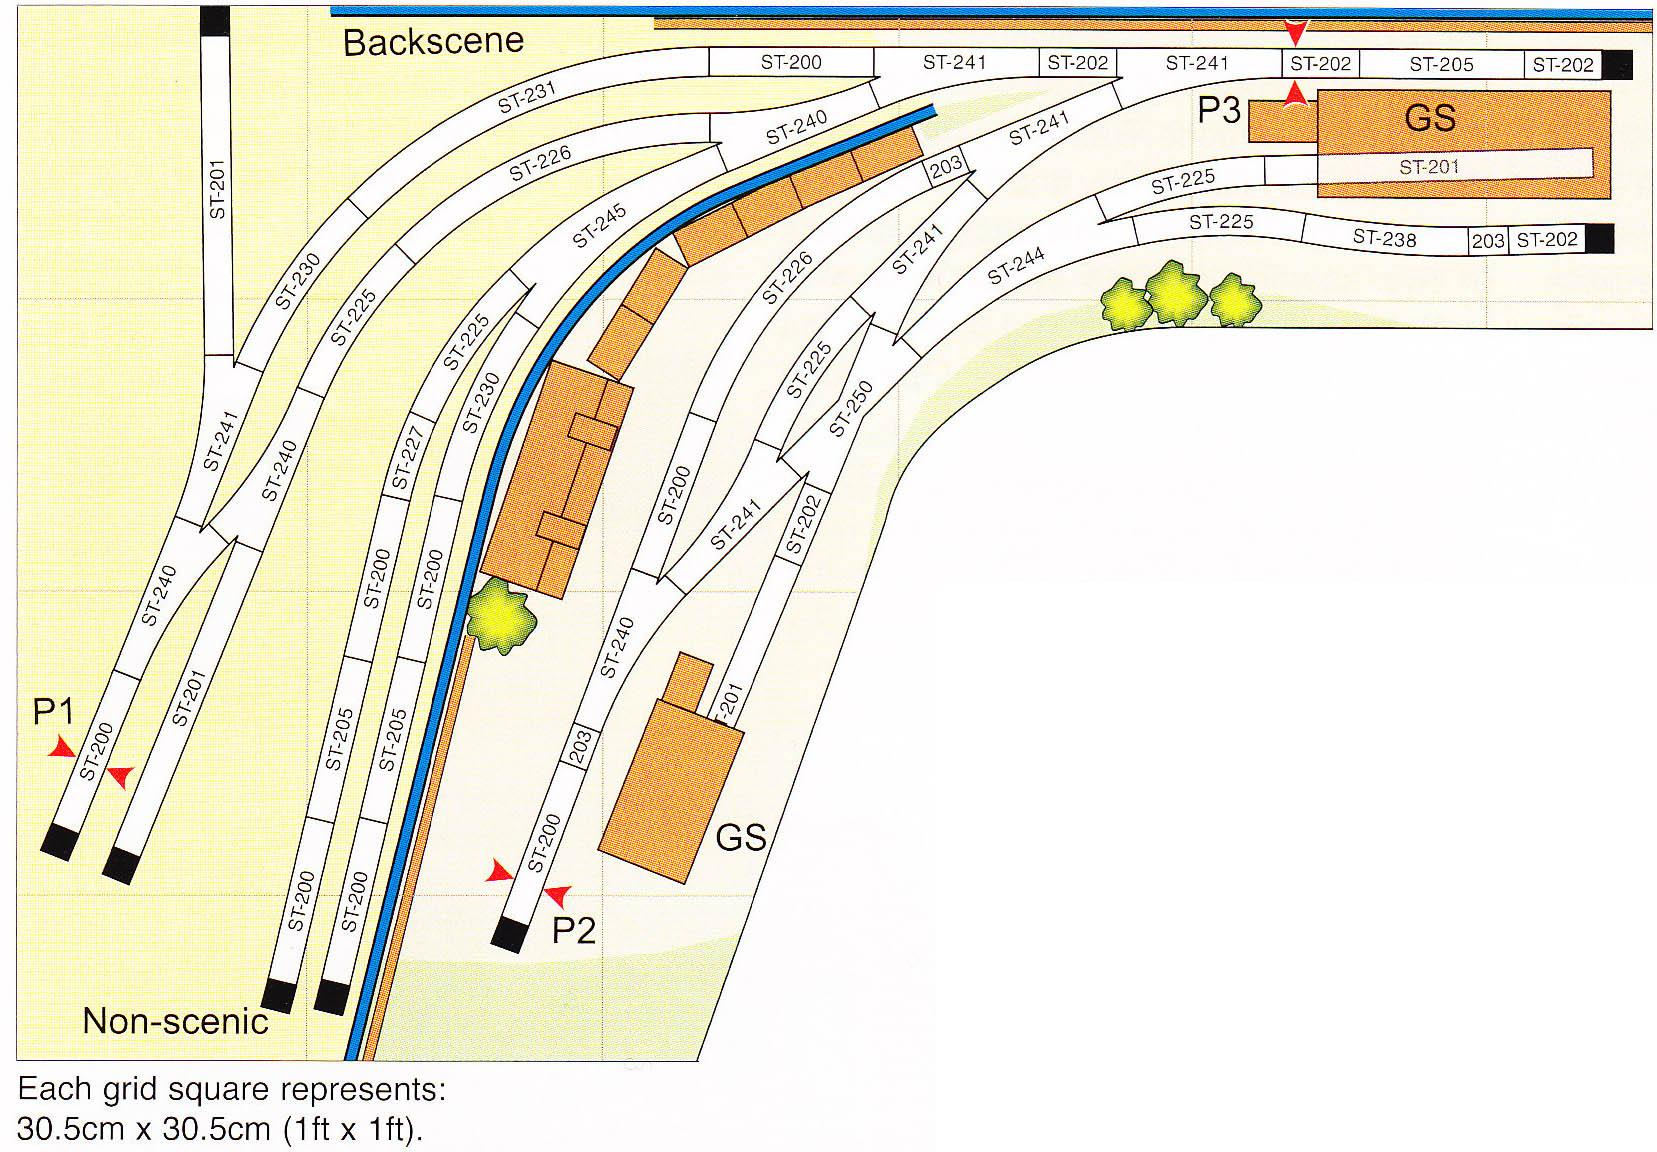 Peco Setrack Oo Plan 11 A Goods Yard Scheme For Shunting